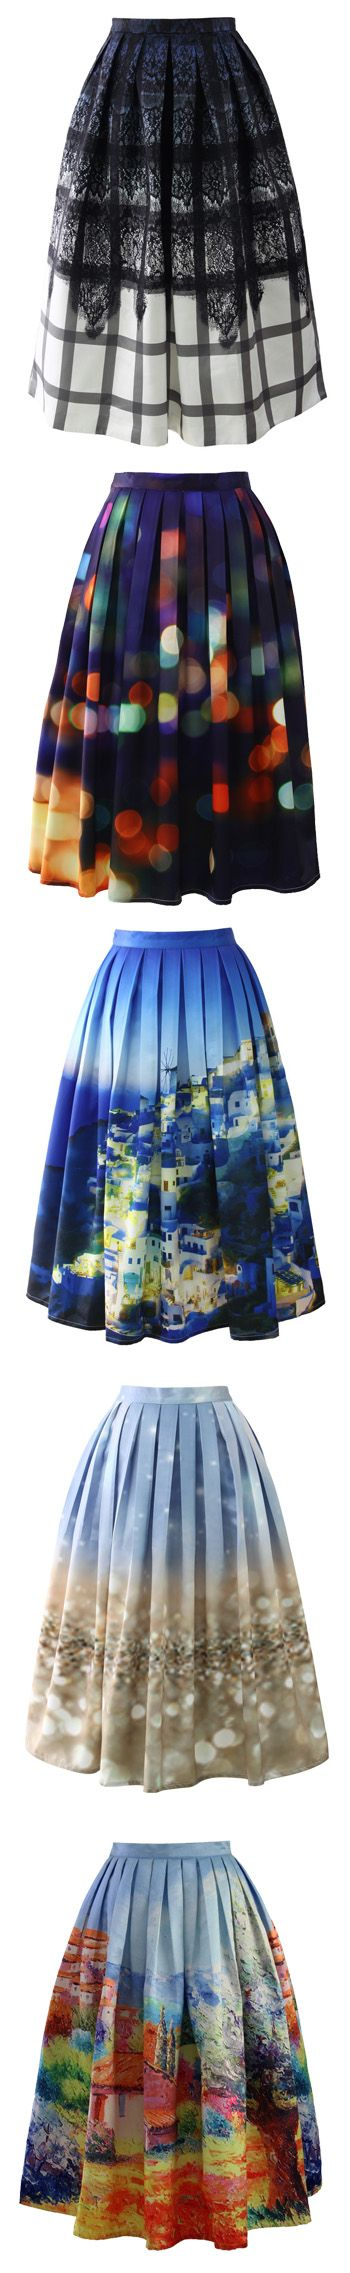 midi skirt one of each. beautiful with a white or black simple blouse depending on the skirt.